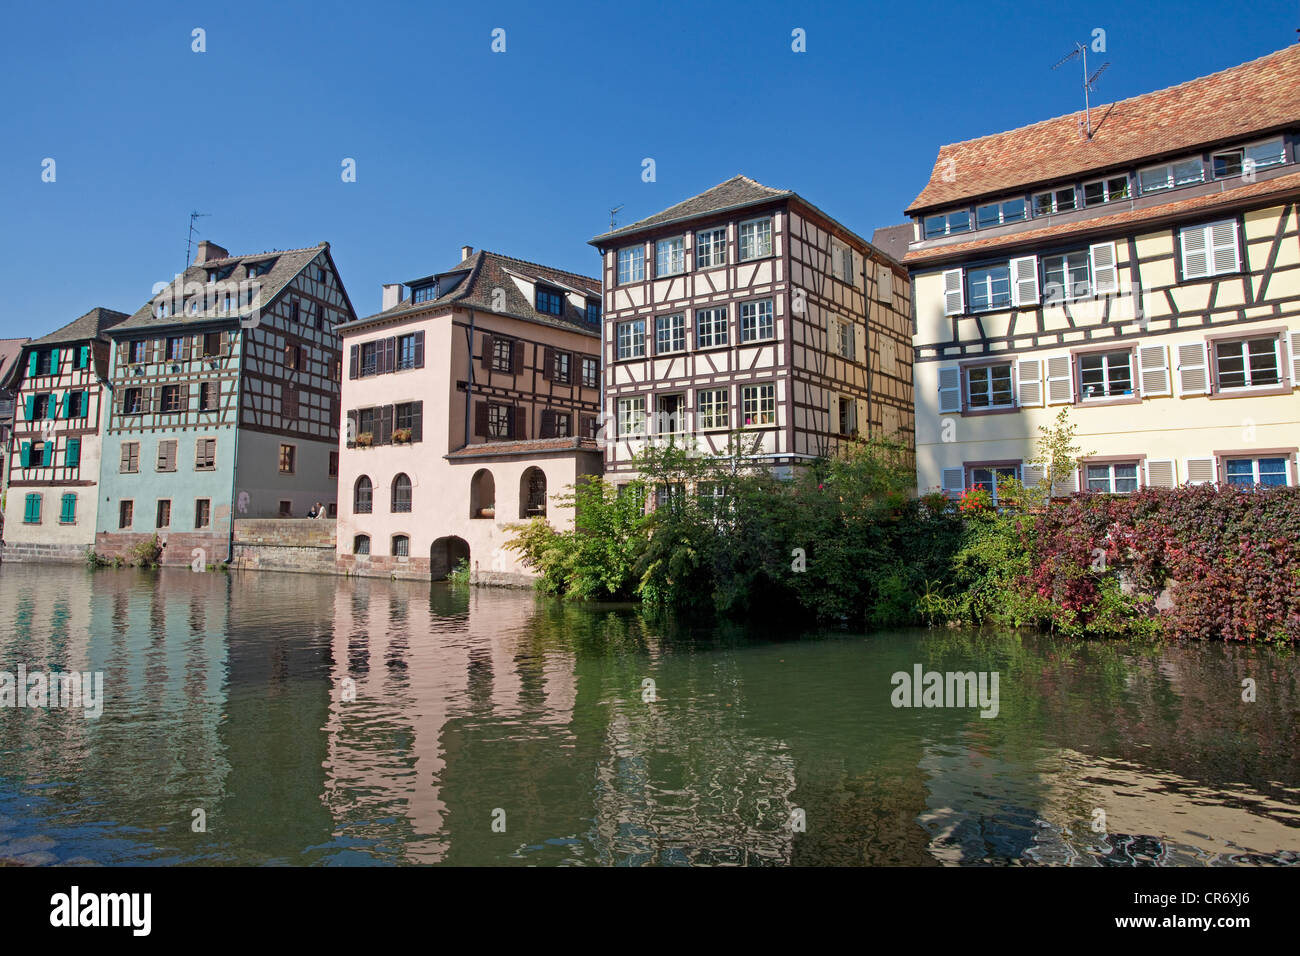 Half-timber houses on the river Ille, Petite France, Strasbourg, Alsace, France, Europe - Stock Image